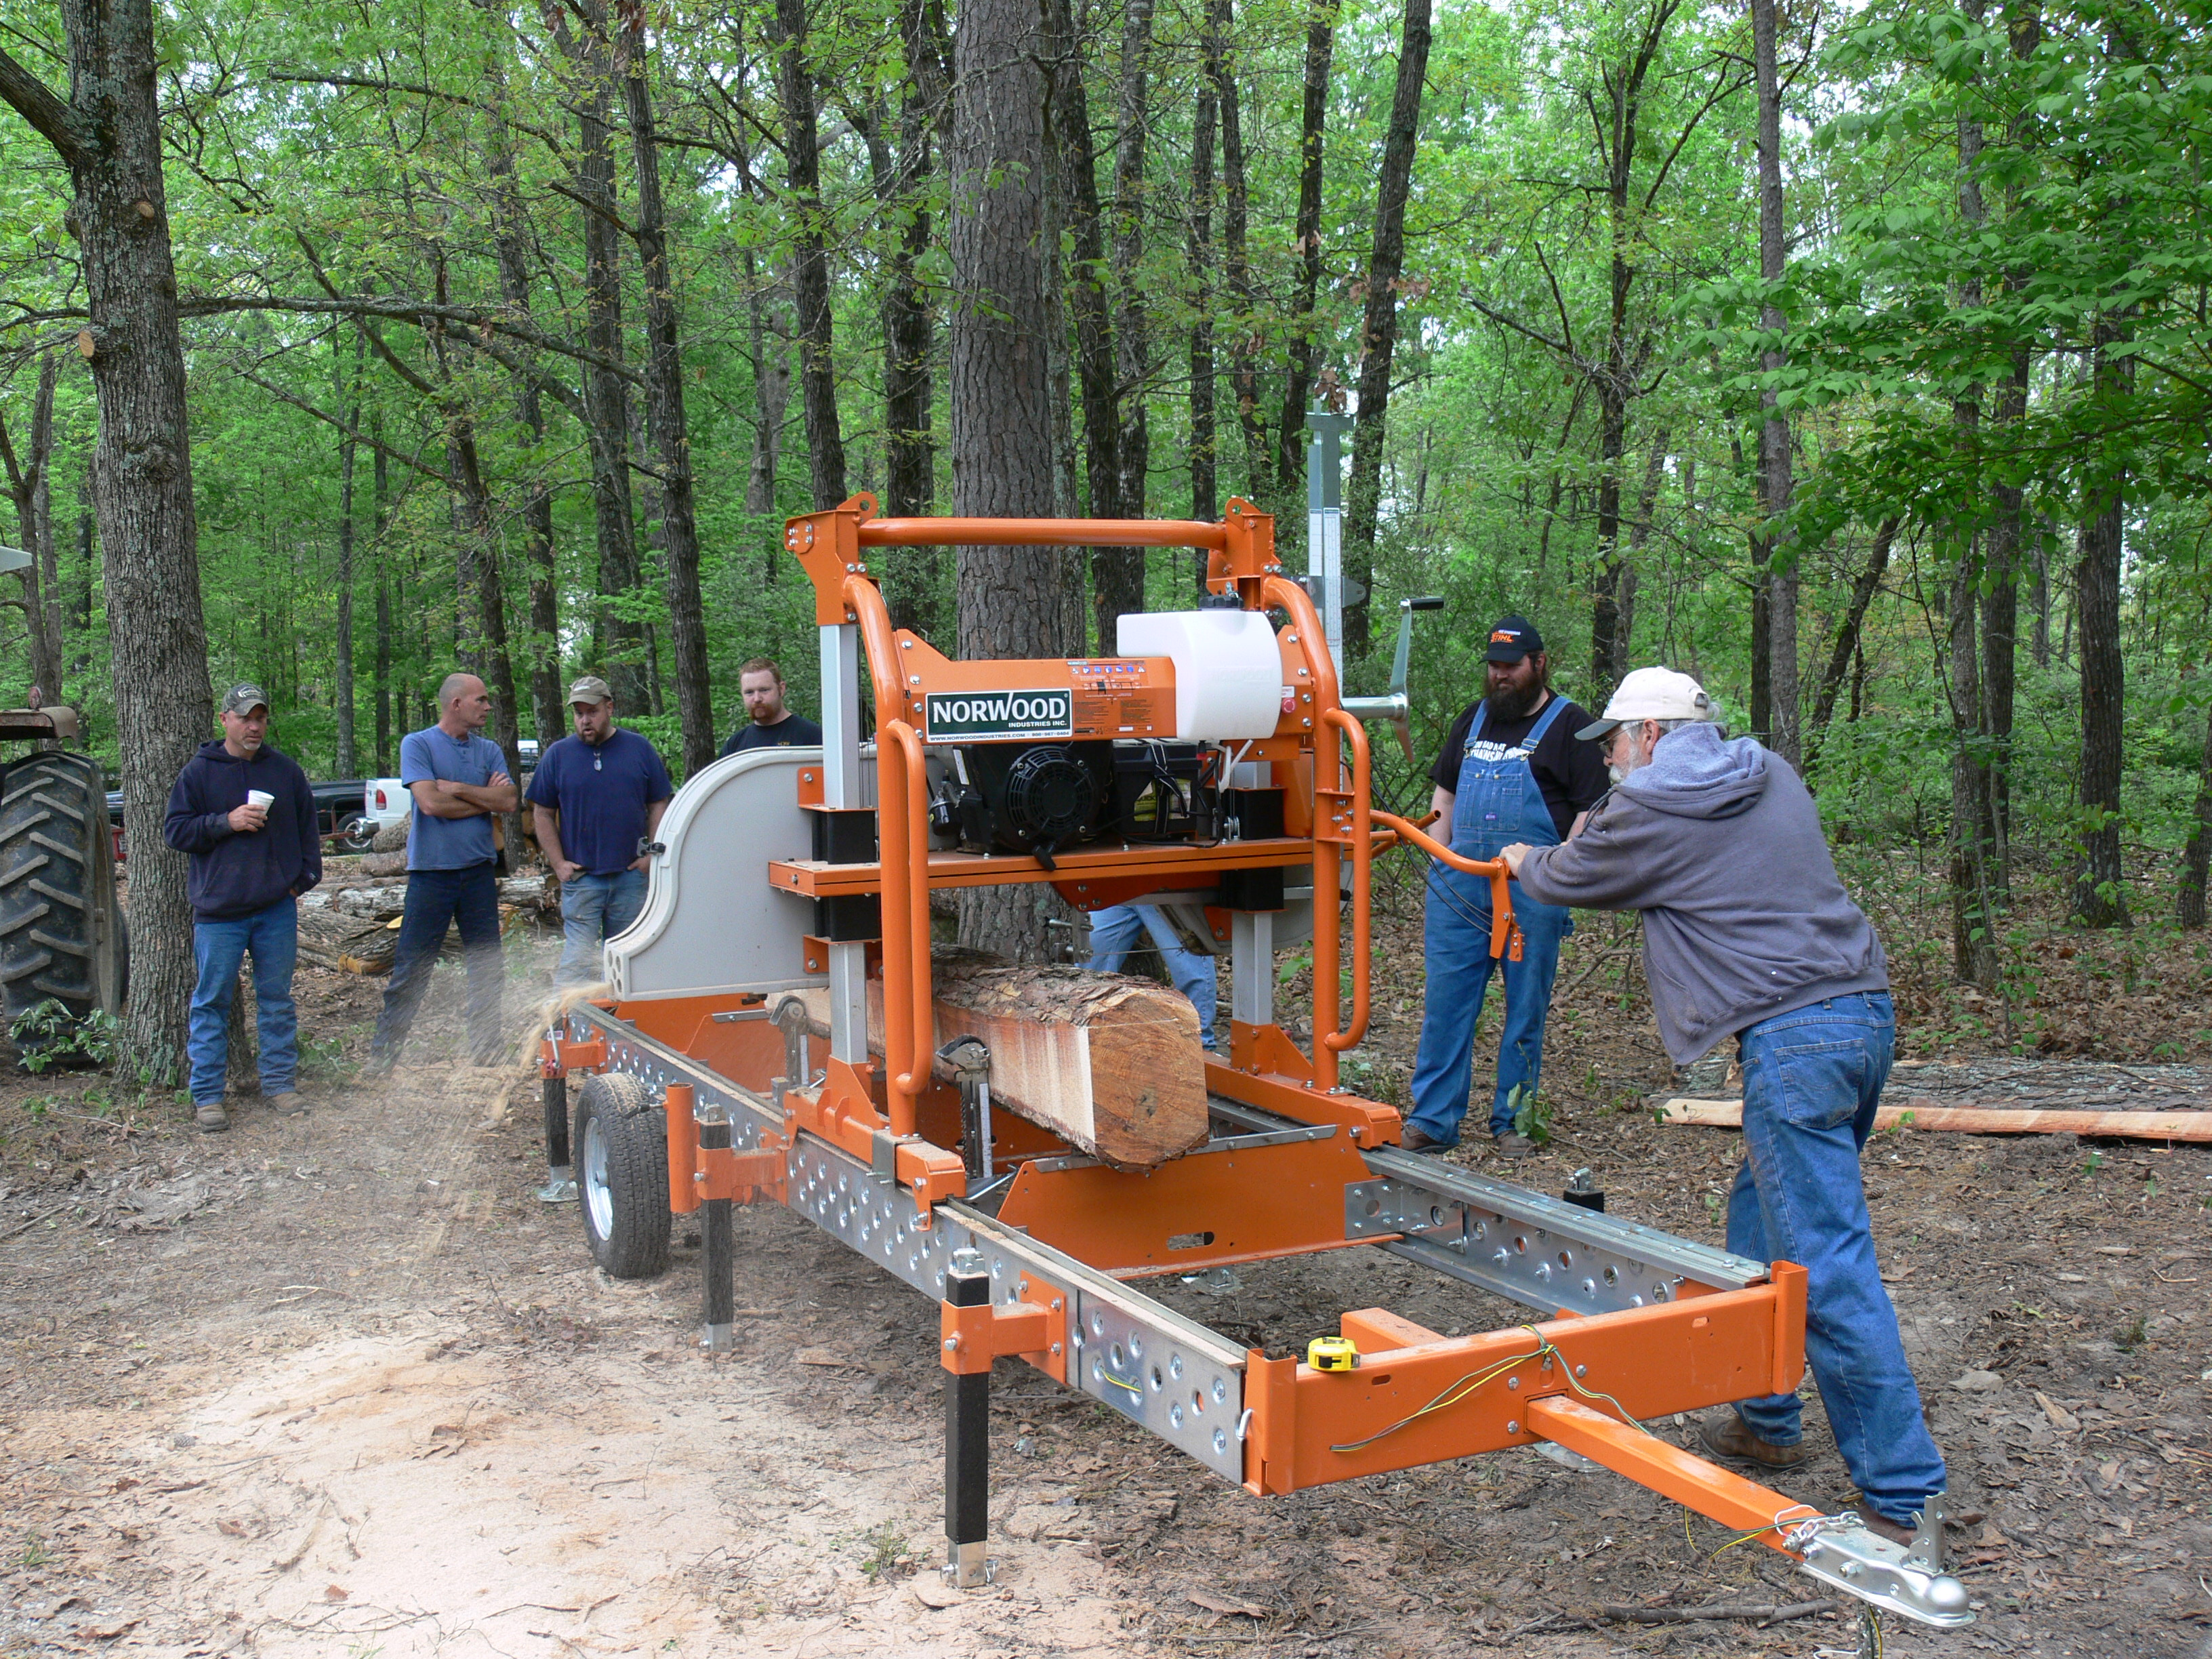 Portable Sawmill Demonstration For Business Leads